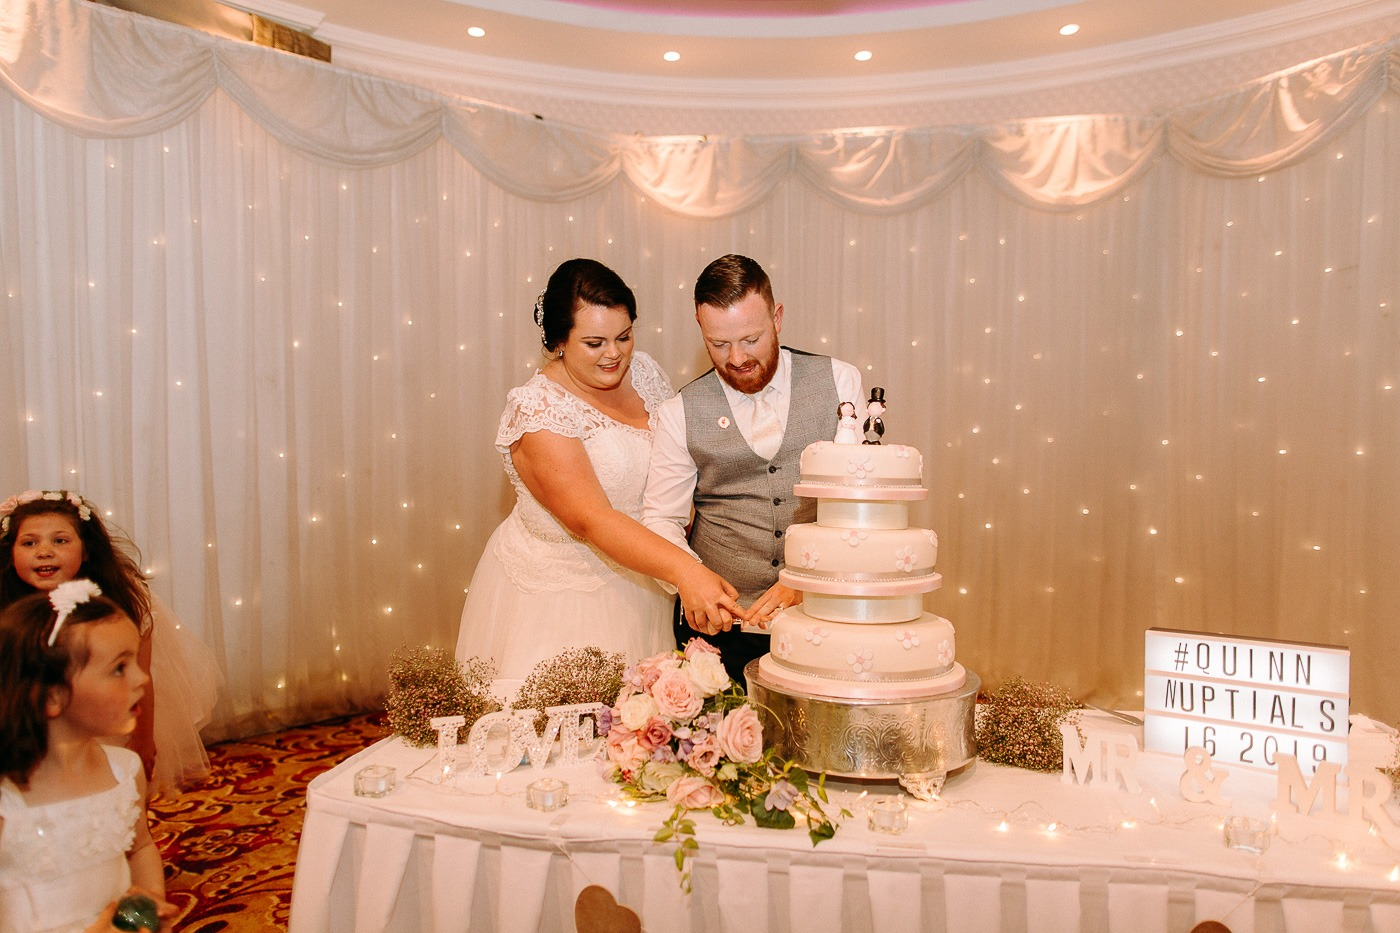 A couple cutting their wedding cake